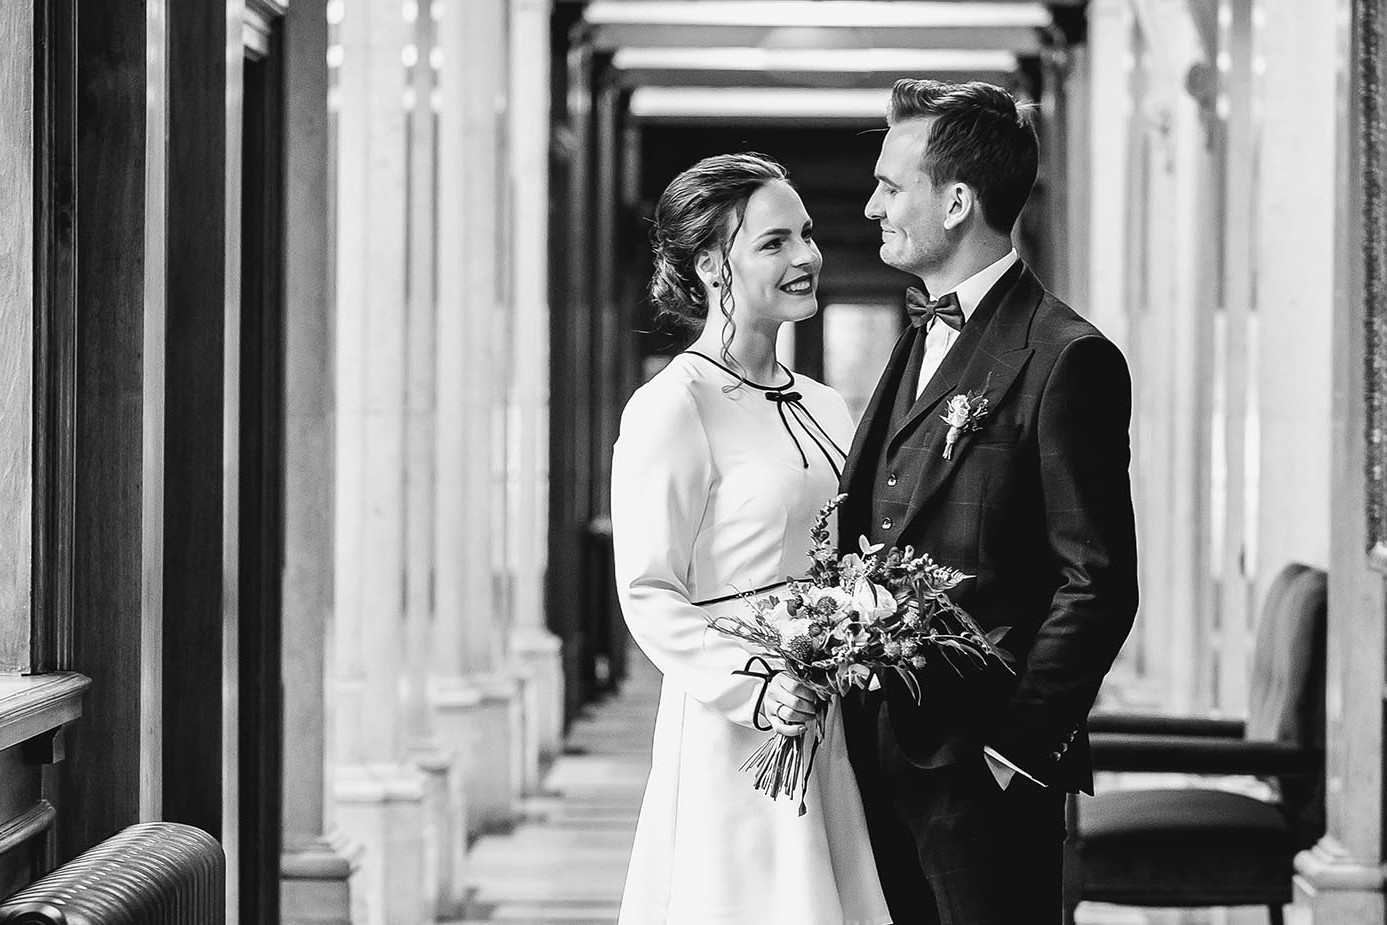 old-marylebone-town-hall-wedding-photography-london-Ernie-Savarese